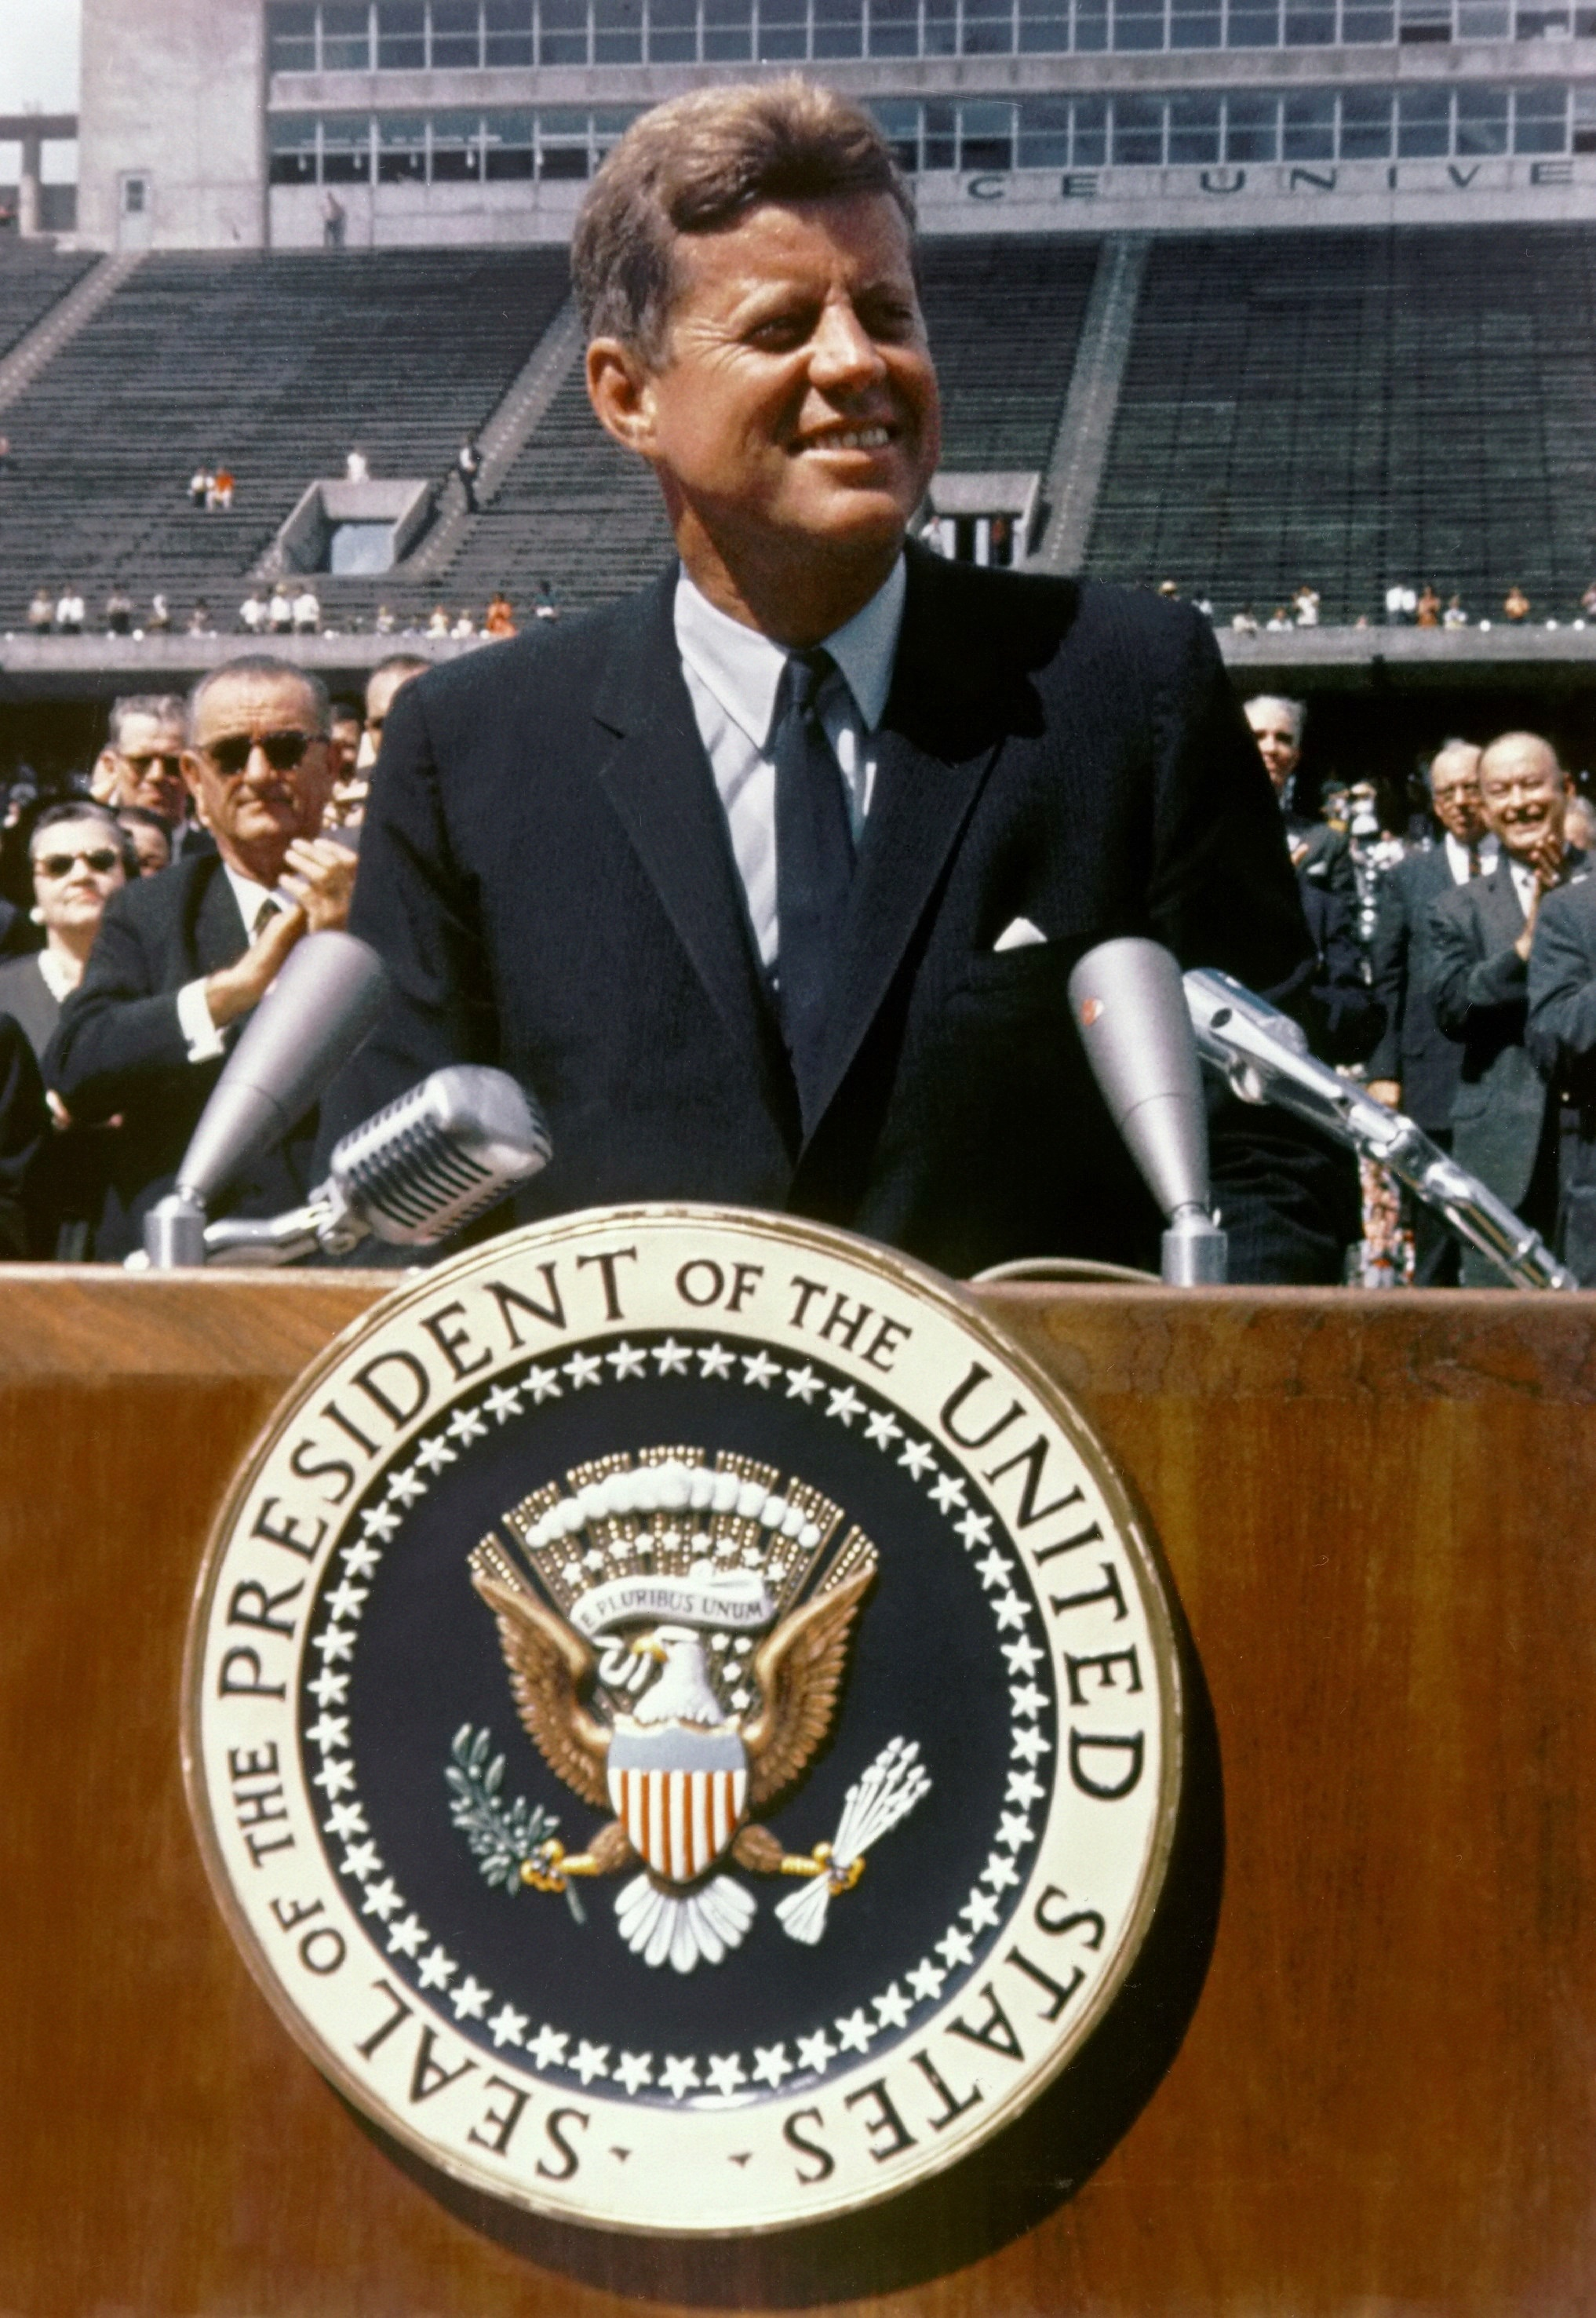 jfk go to the moon speech